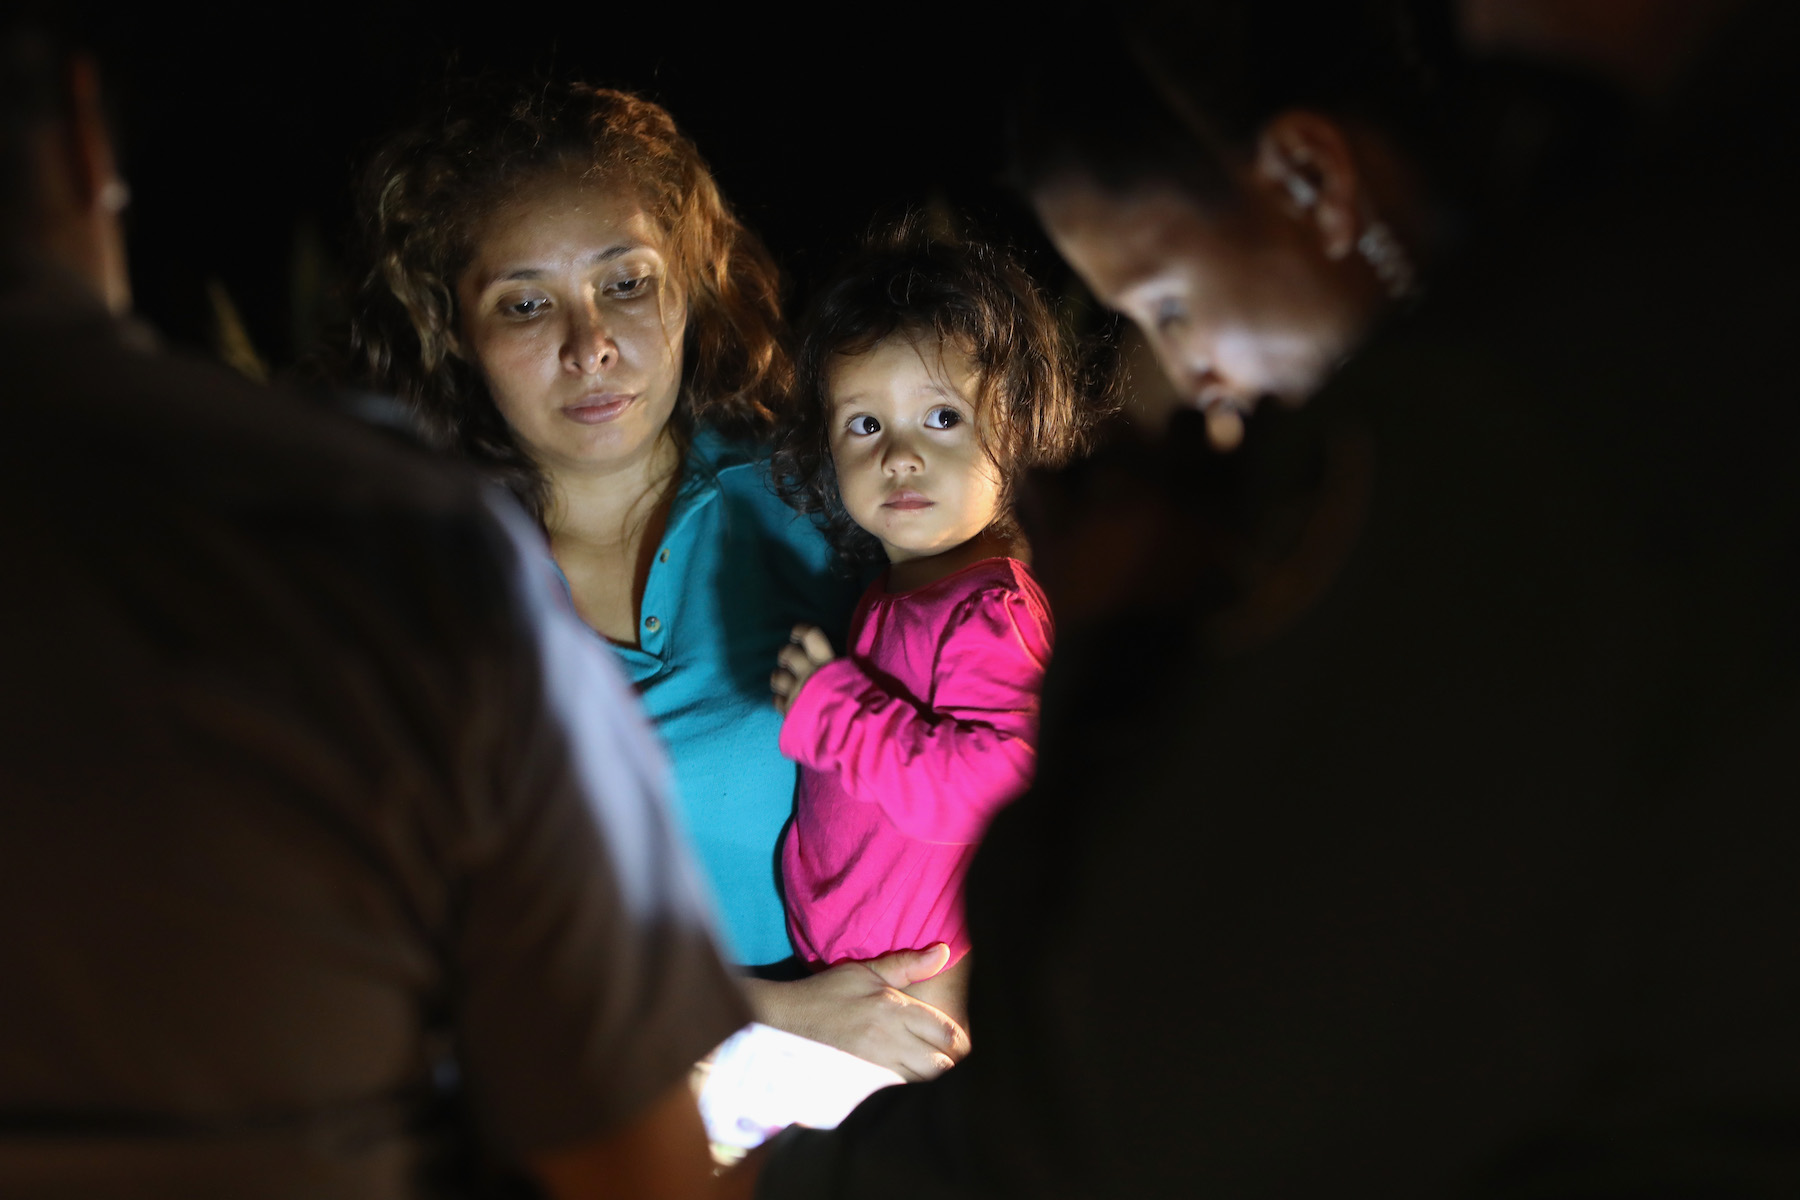 Immigrant family in Texas detained by border patrol agents